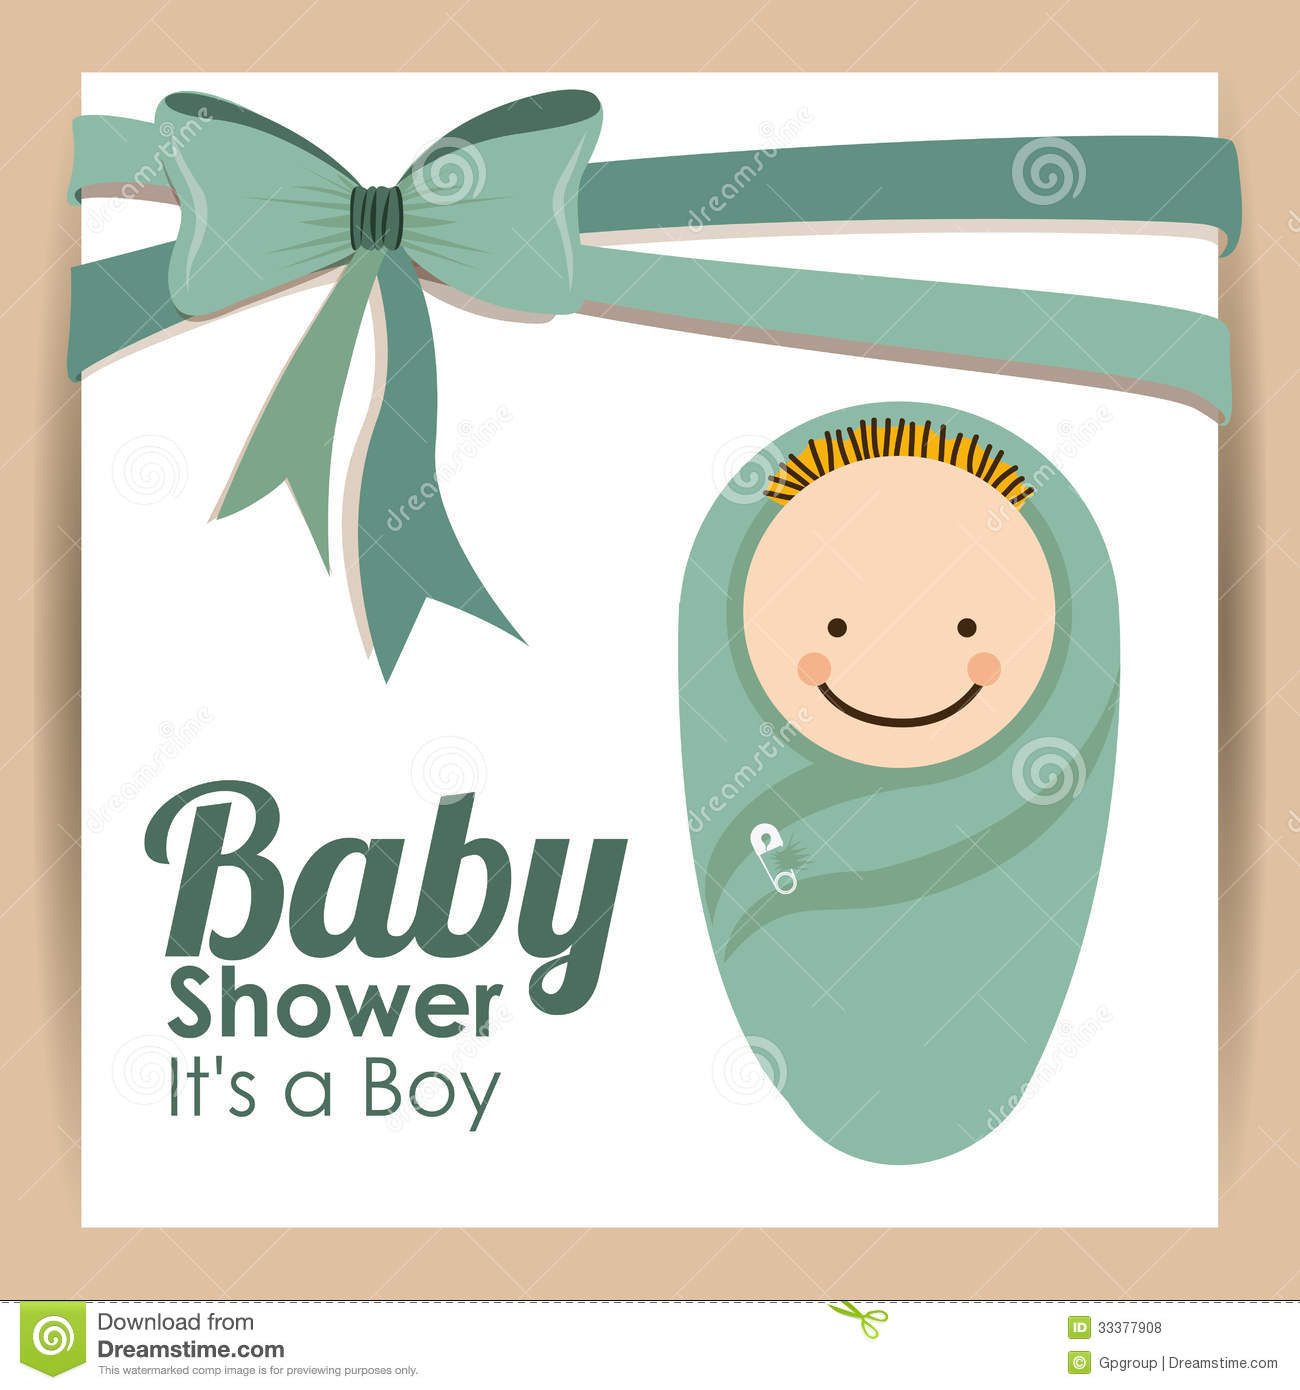 baby shower design royalty free stock photos image 33377908